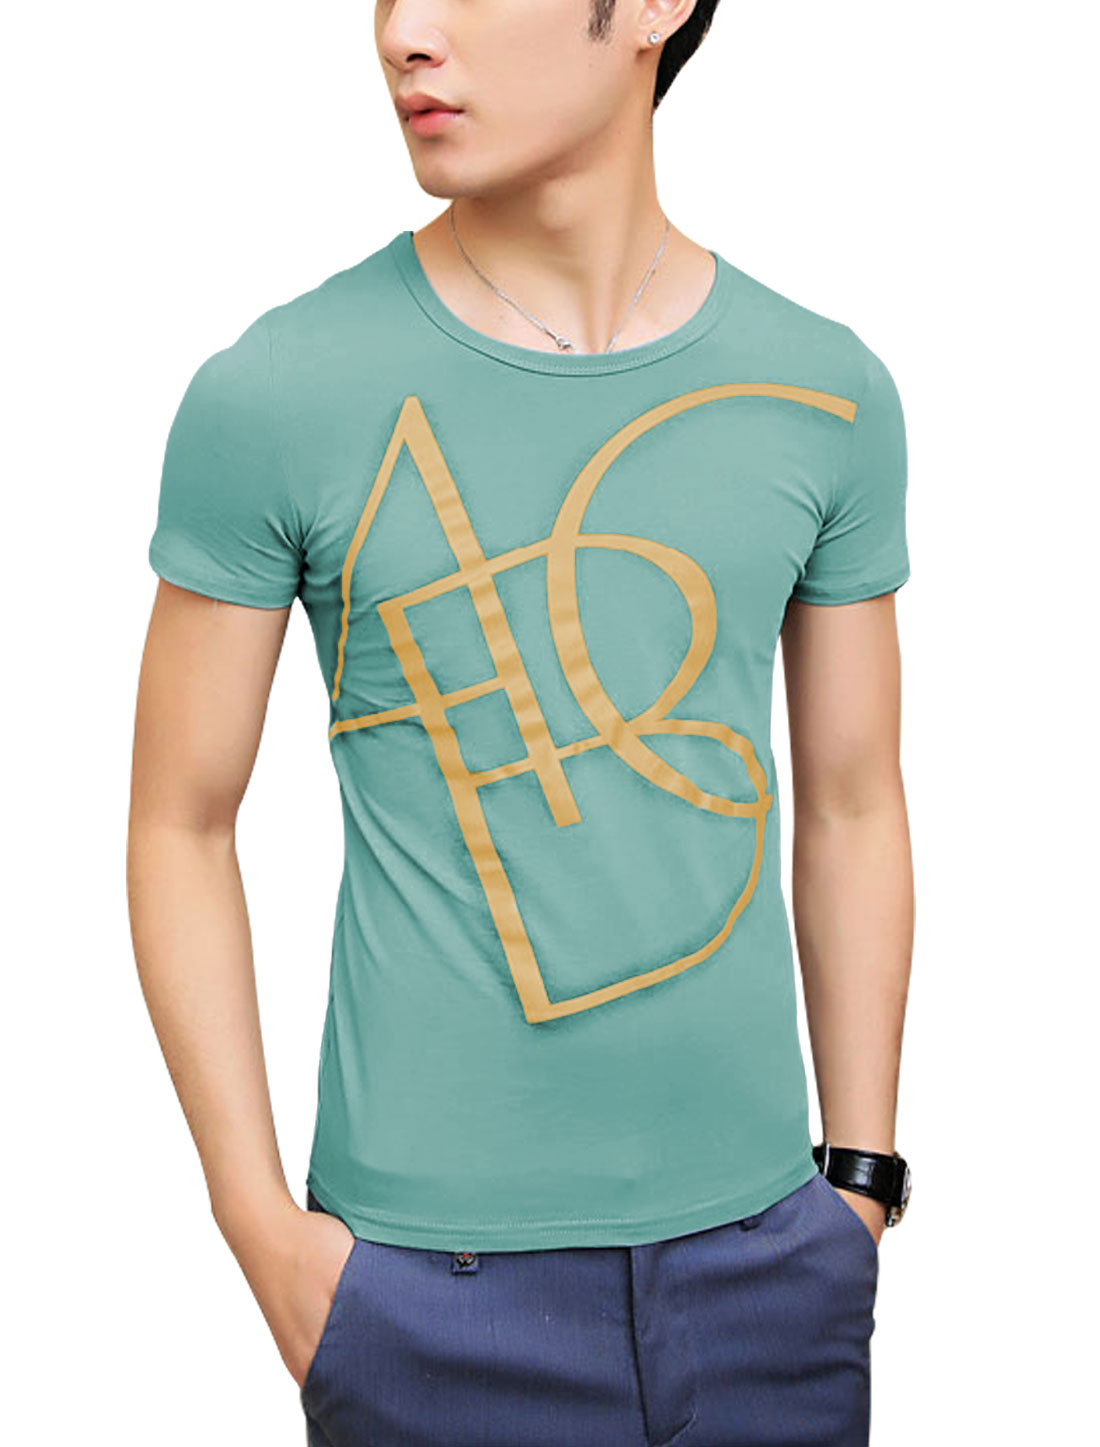 Cozy Fit Slipover Round Neck Letters Printed Tee Top for Men Aqua S